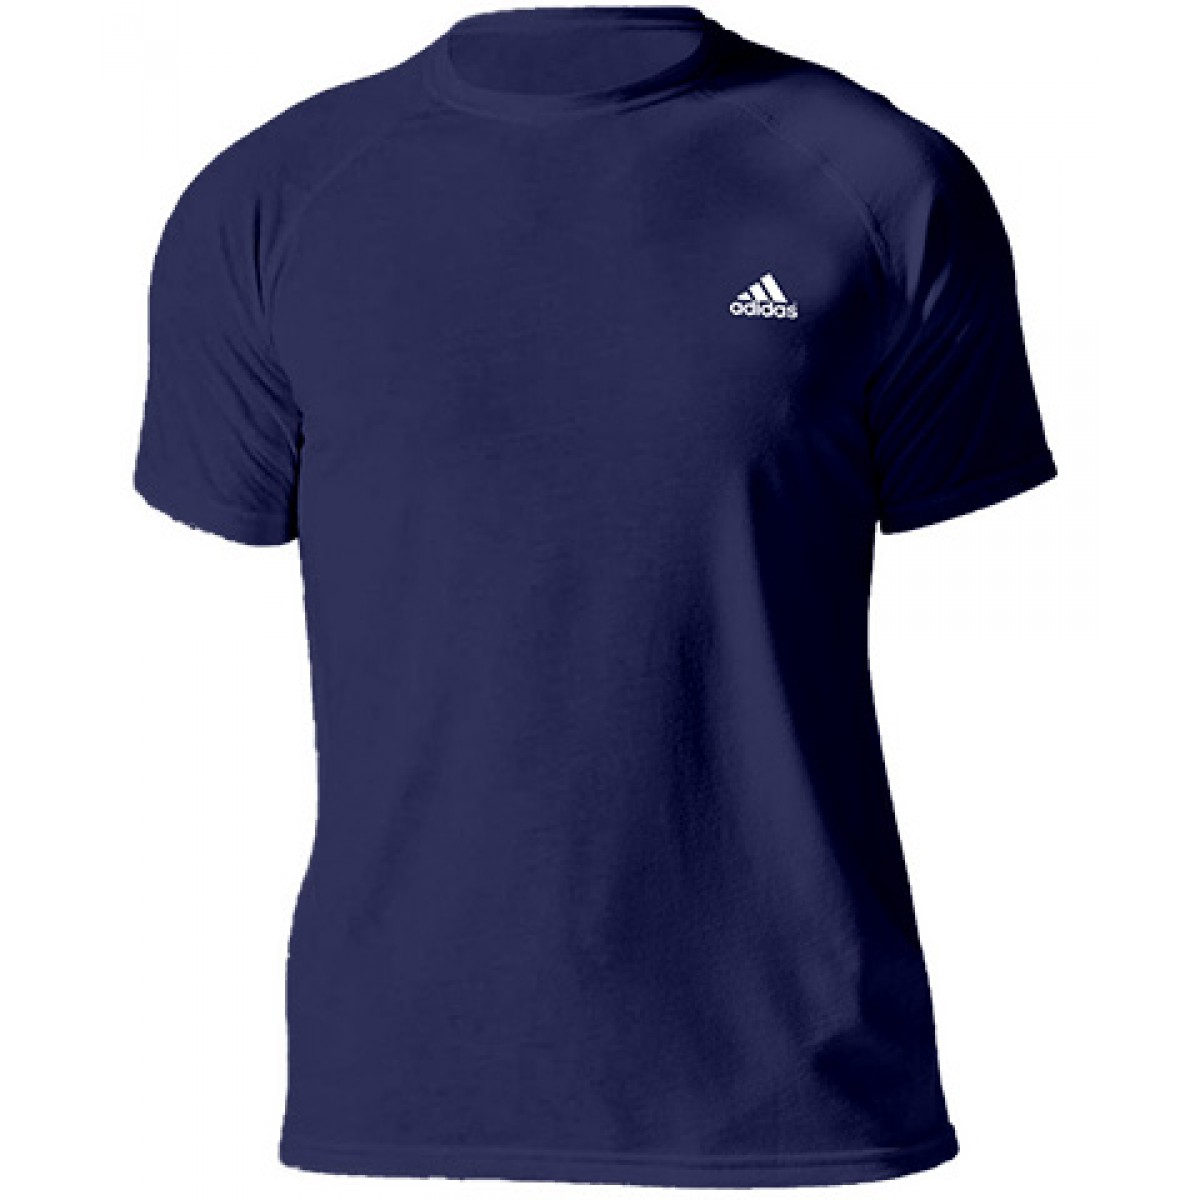 Adidas Embroidered Logo Essential Crew Neck T-shirt-Navy-L